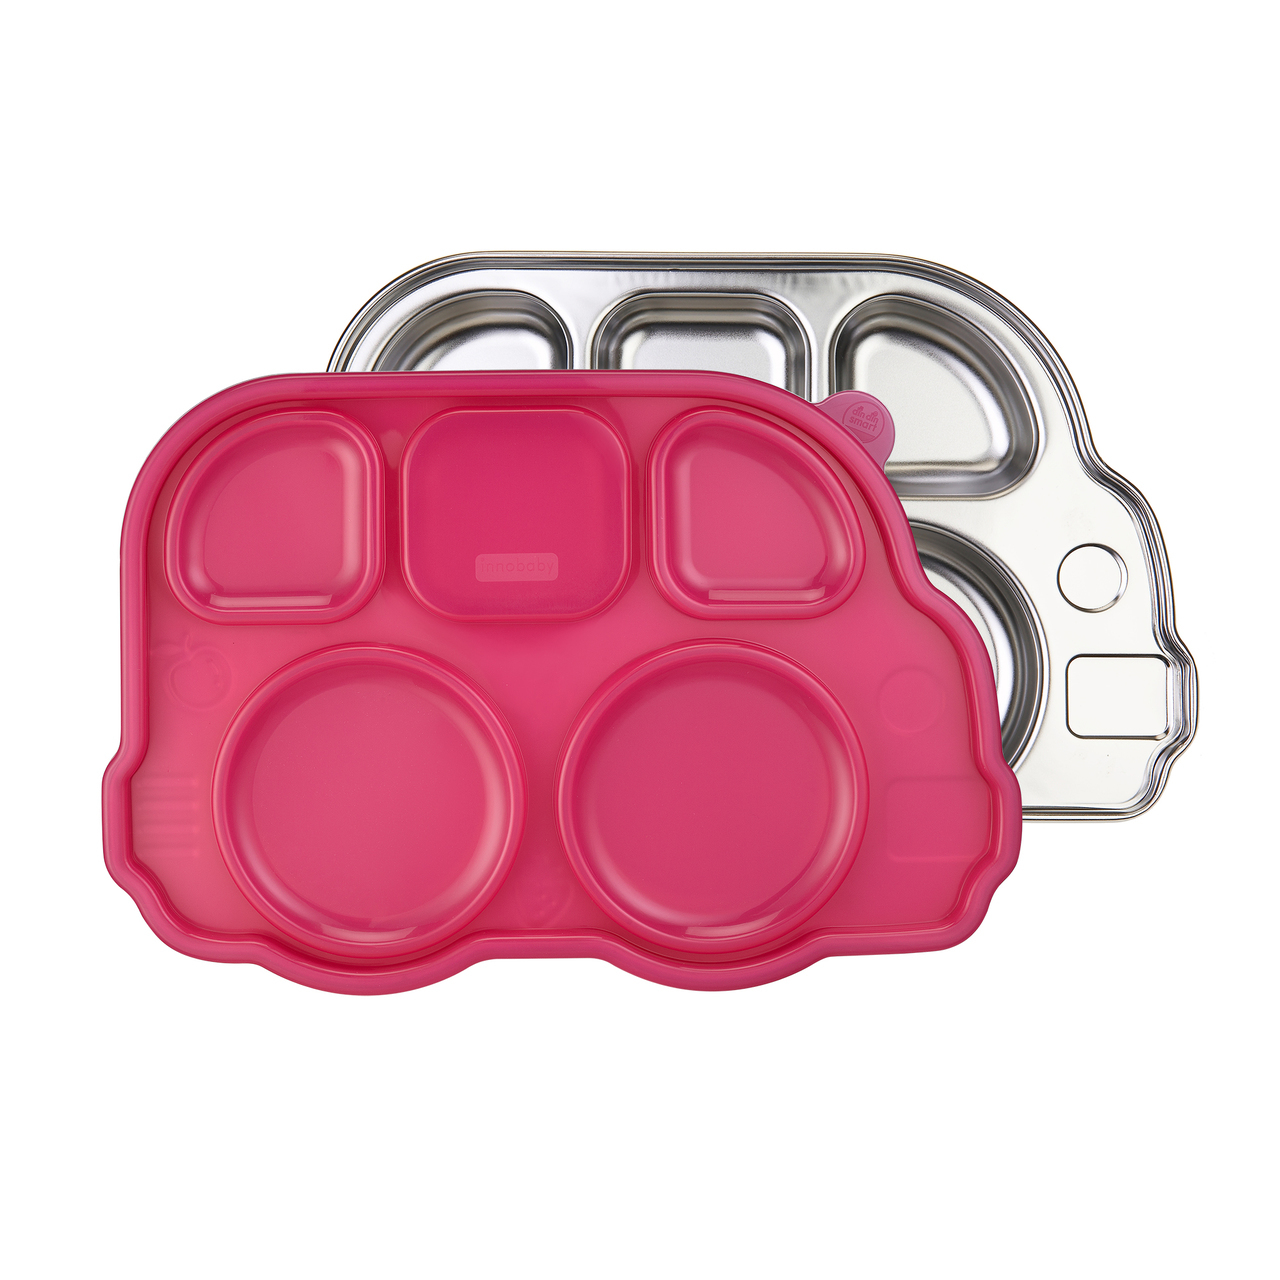 Innobaby Din Din Smart Stainless Divided Platter with Sectional Lid, Stainless Steel Divided Plate for Babies, Toddlers and Kids, BPA free plate (PINK)